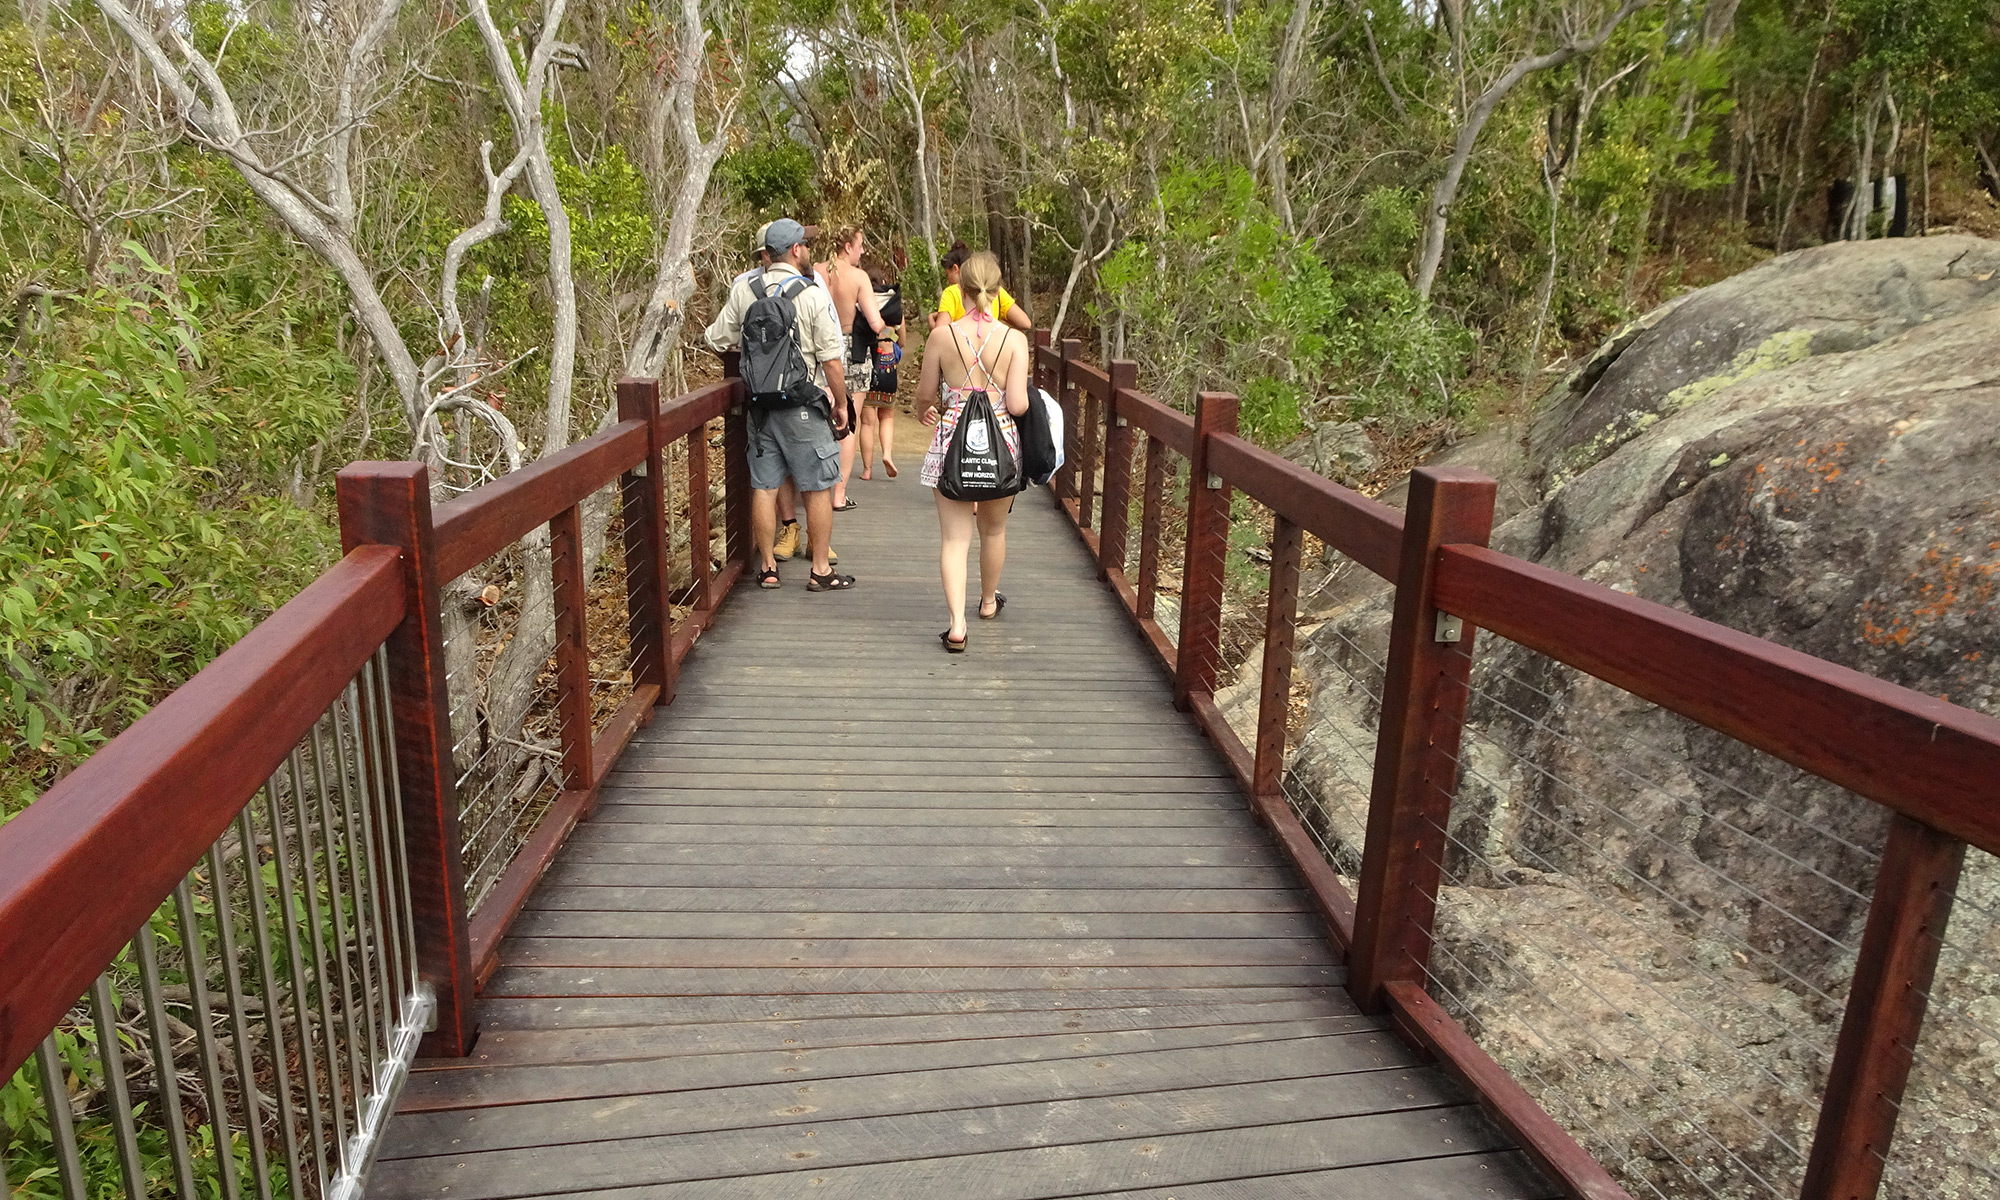 A boardwalk is beneficial to tourists and it protects the environment